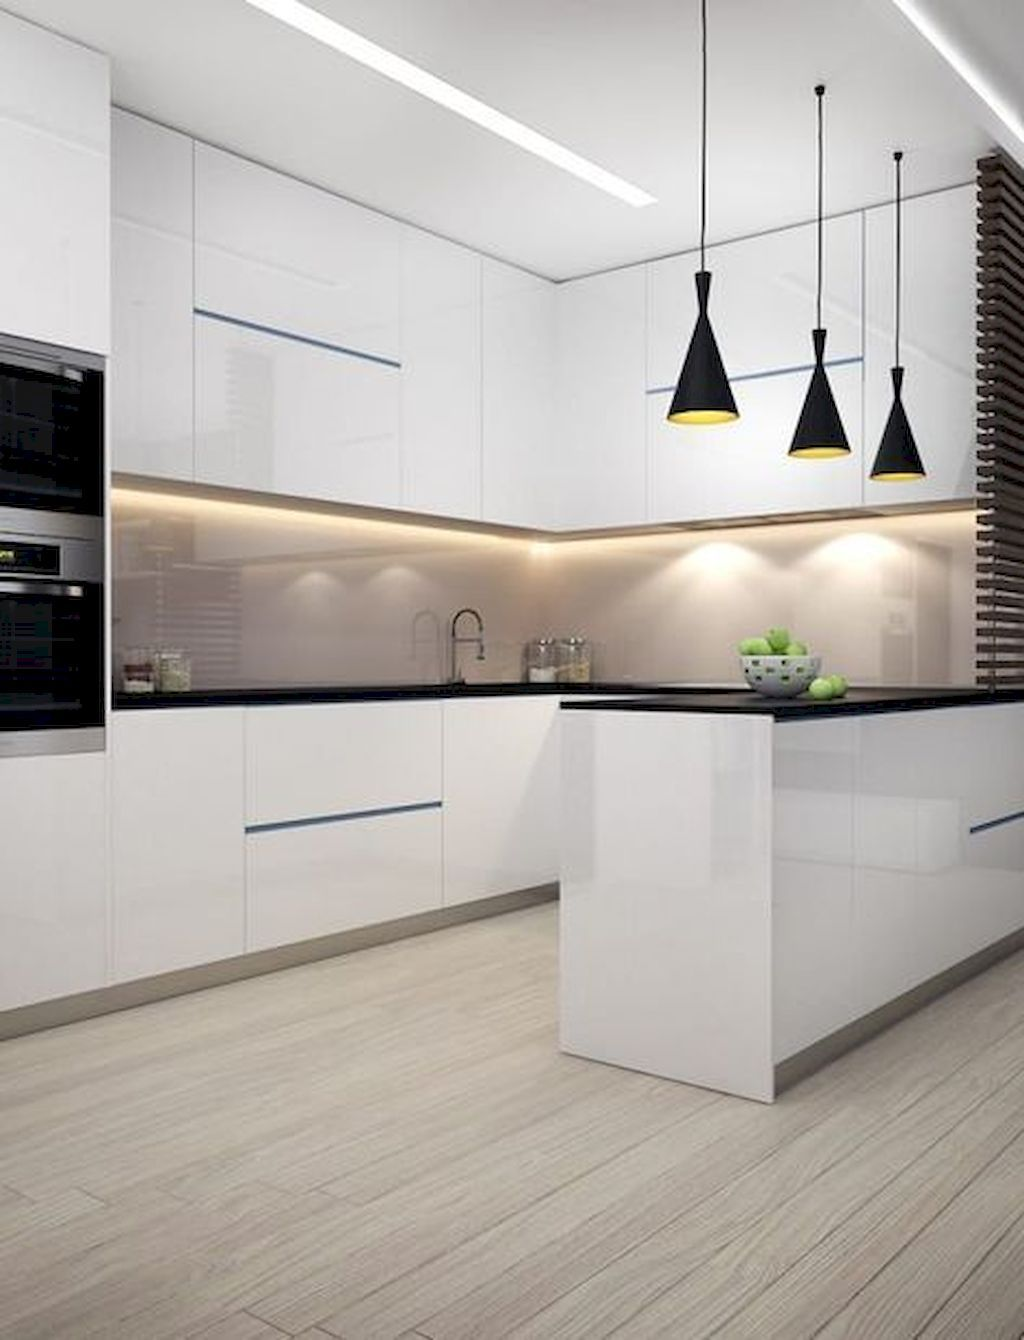 Ideas for making a Trendy Small Dimension Minimalist Kitchen - Homemidi